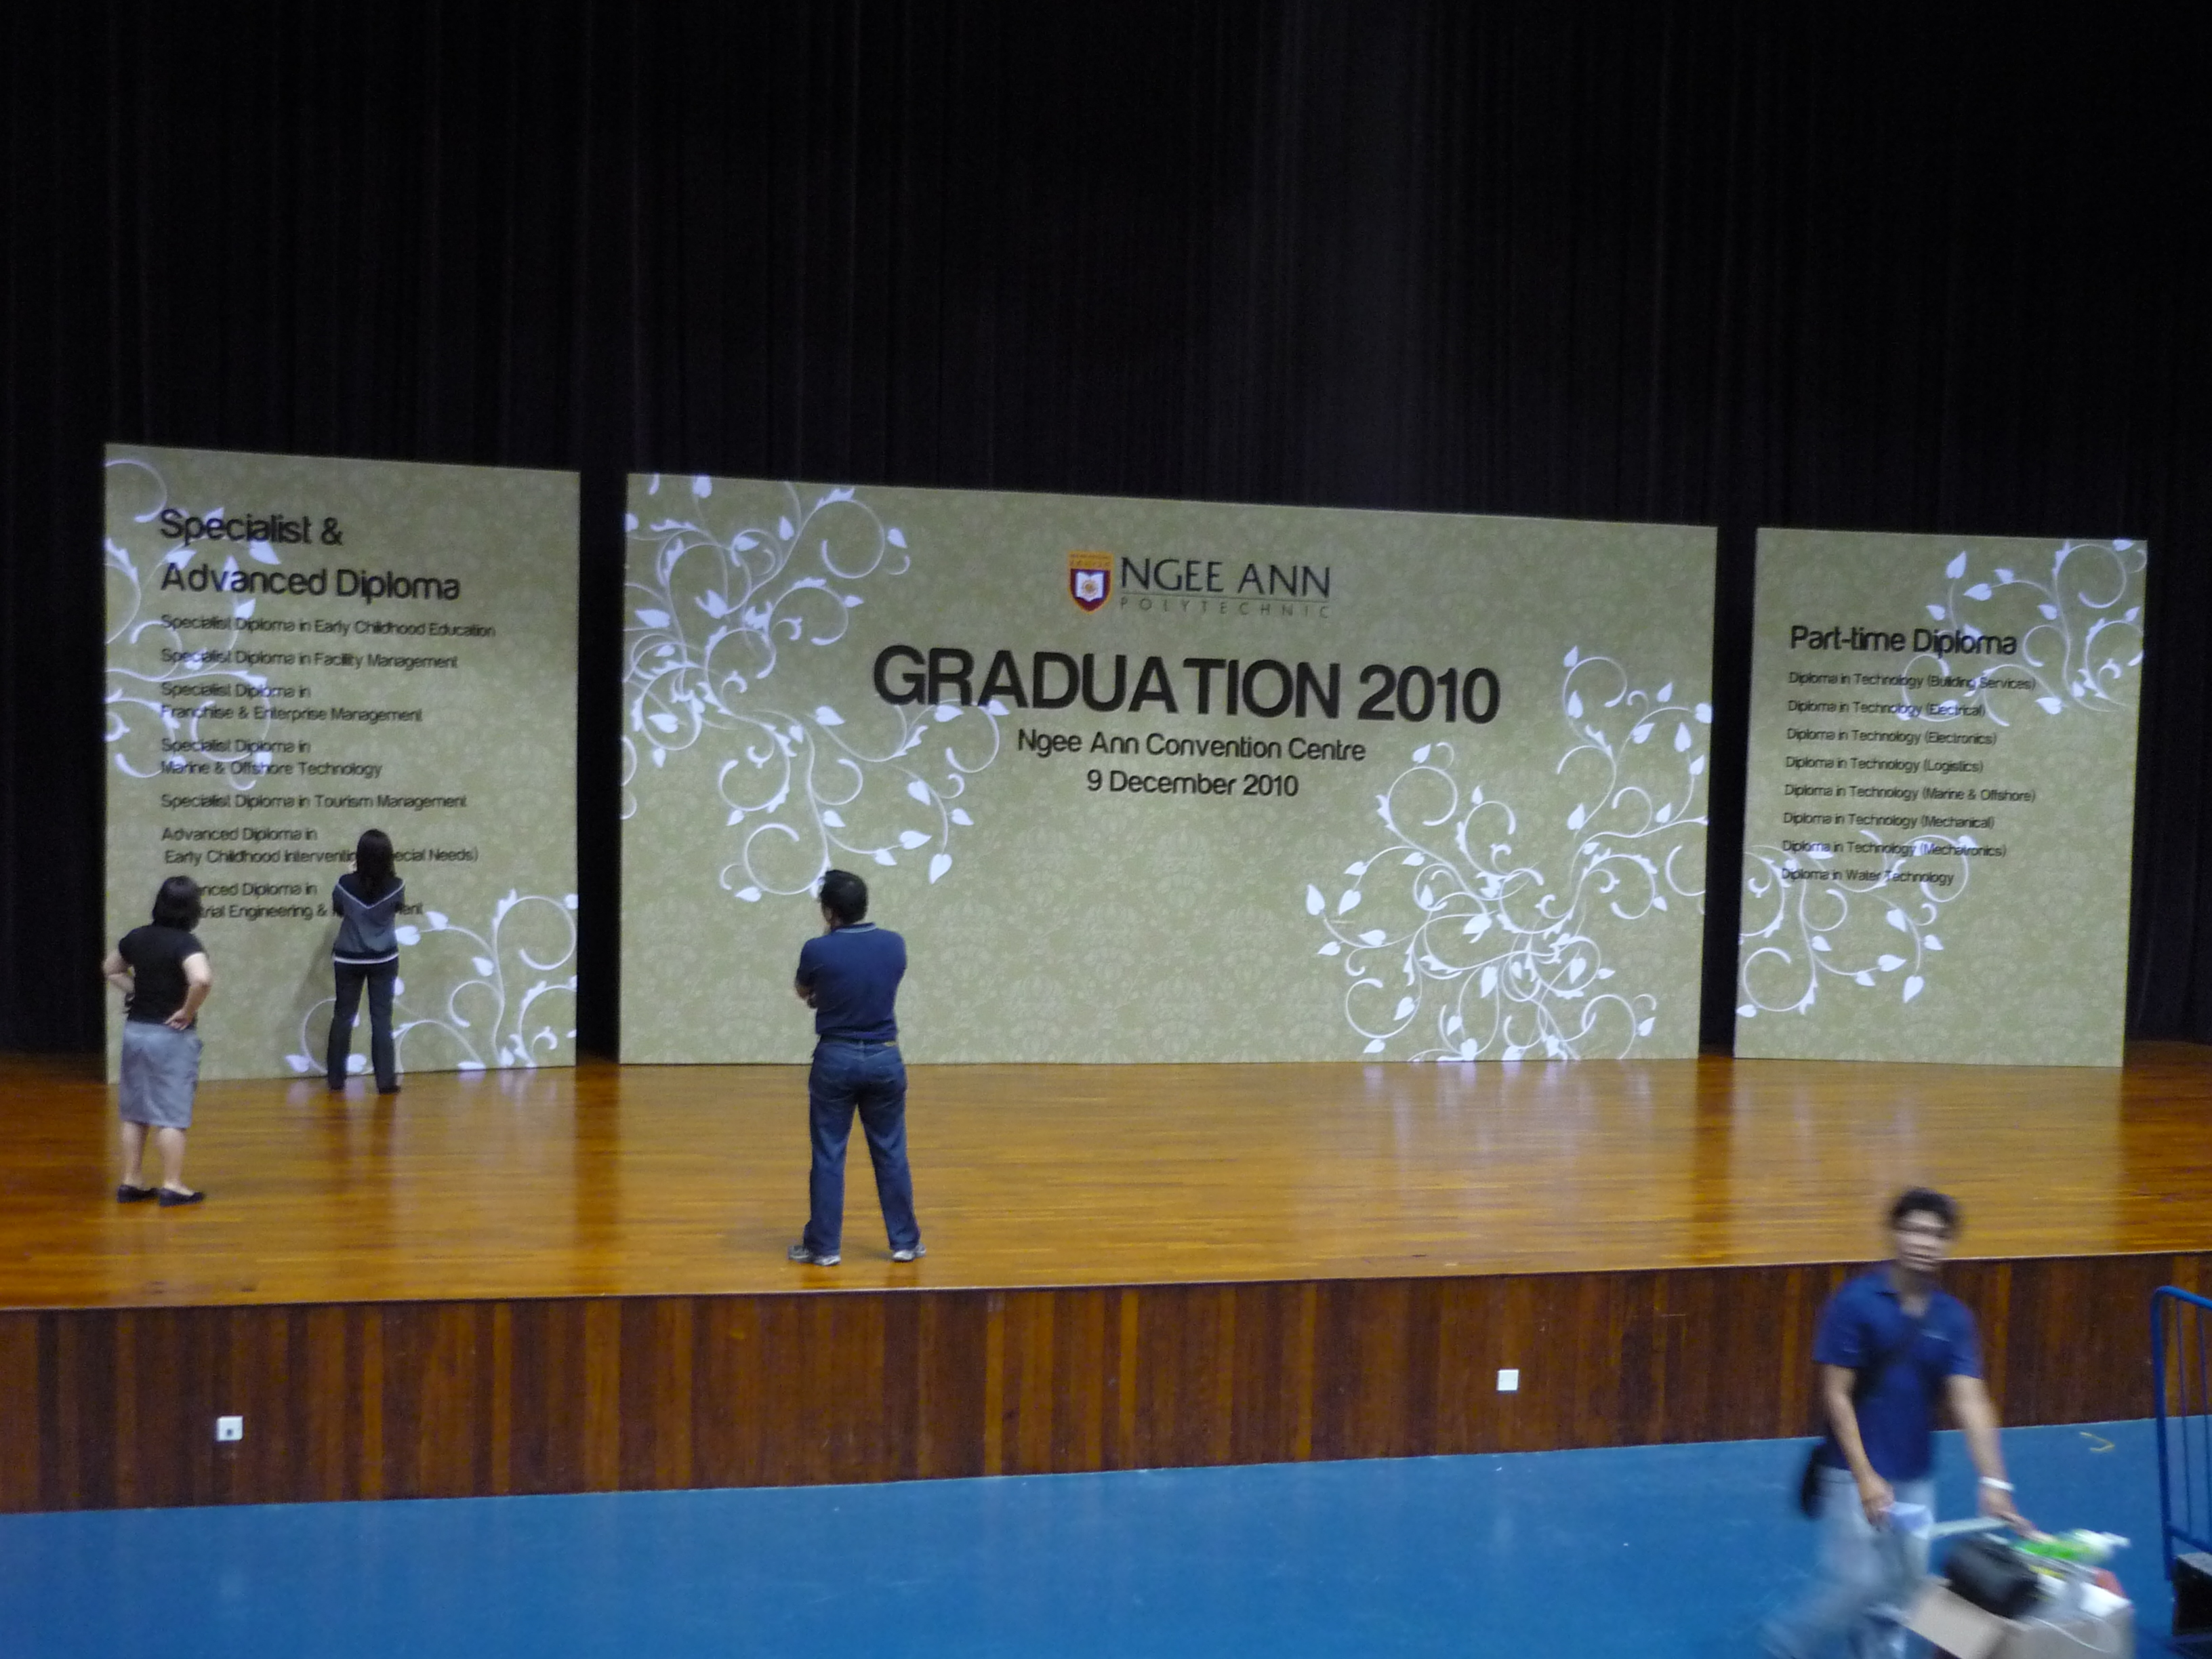 Customised Graduation Backdrop